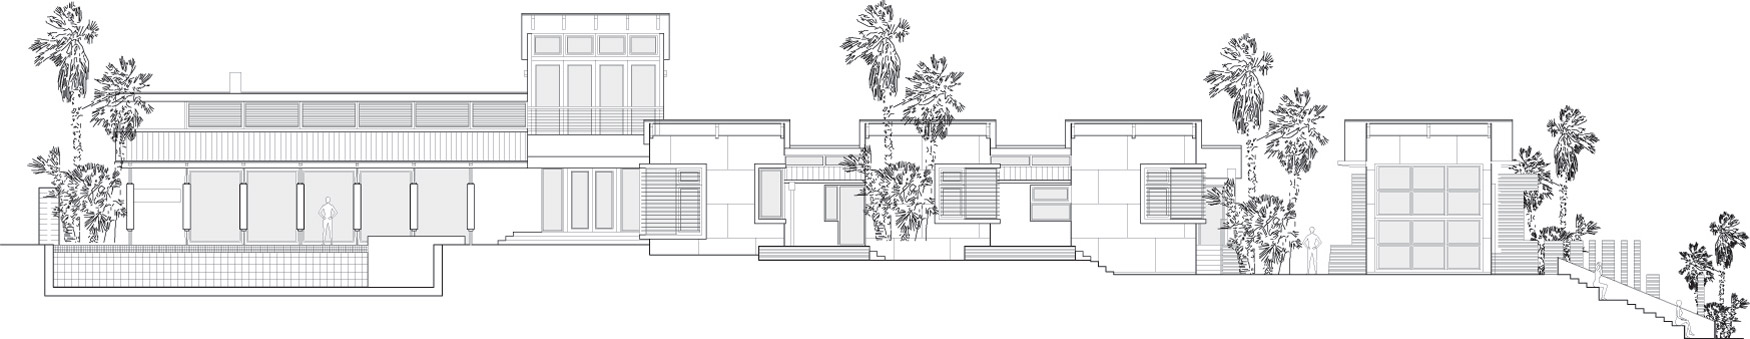 South Elevation, Areopagus Residence in Atenas, Costa Rica by Paravant Architects